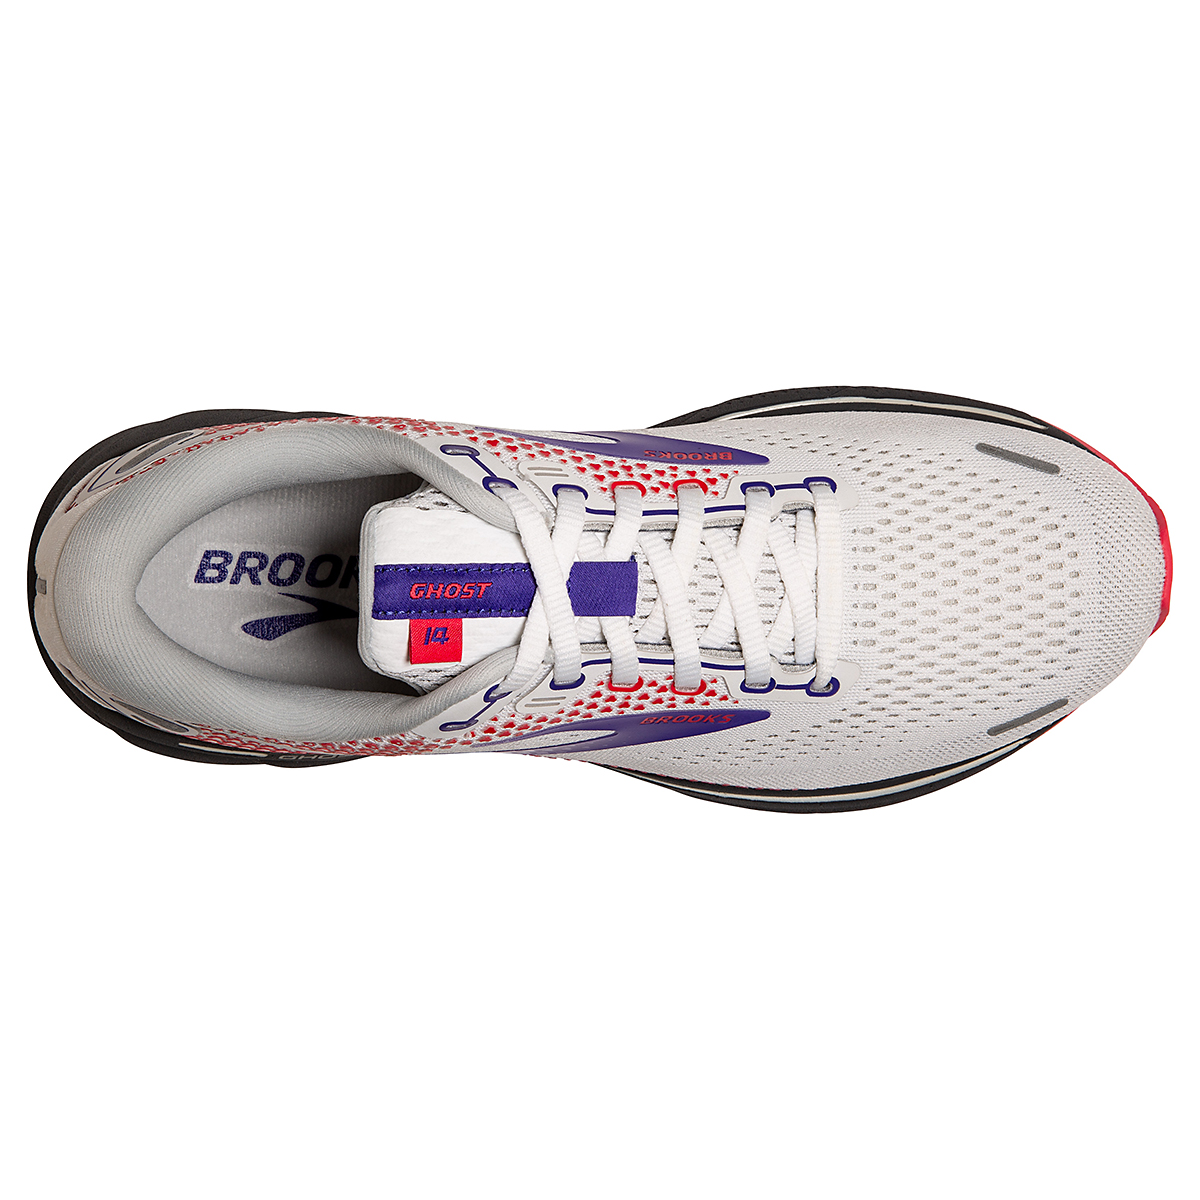 Women's Brooks Ghost 14 Running Shoe - Color: White/Purple/Coral - Size: 5 - Width: Regular, White/Purple/Coral, large, image 3